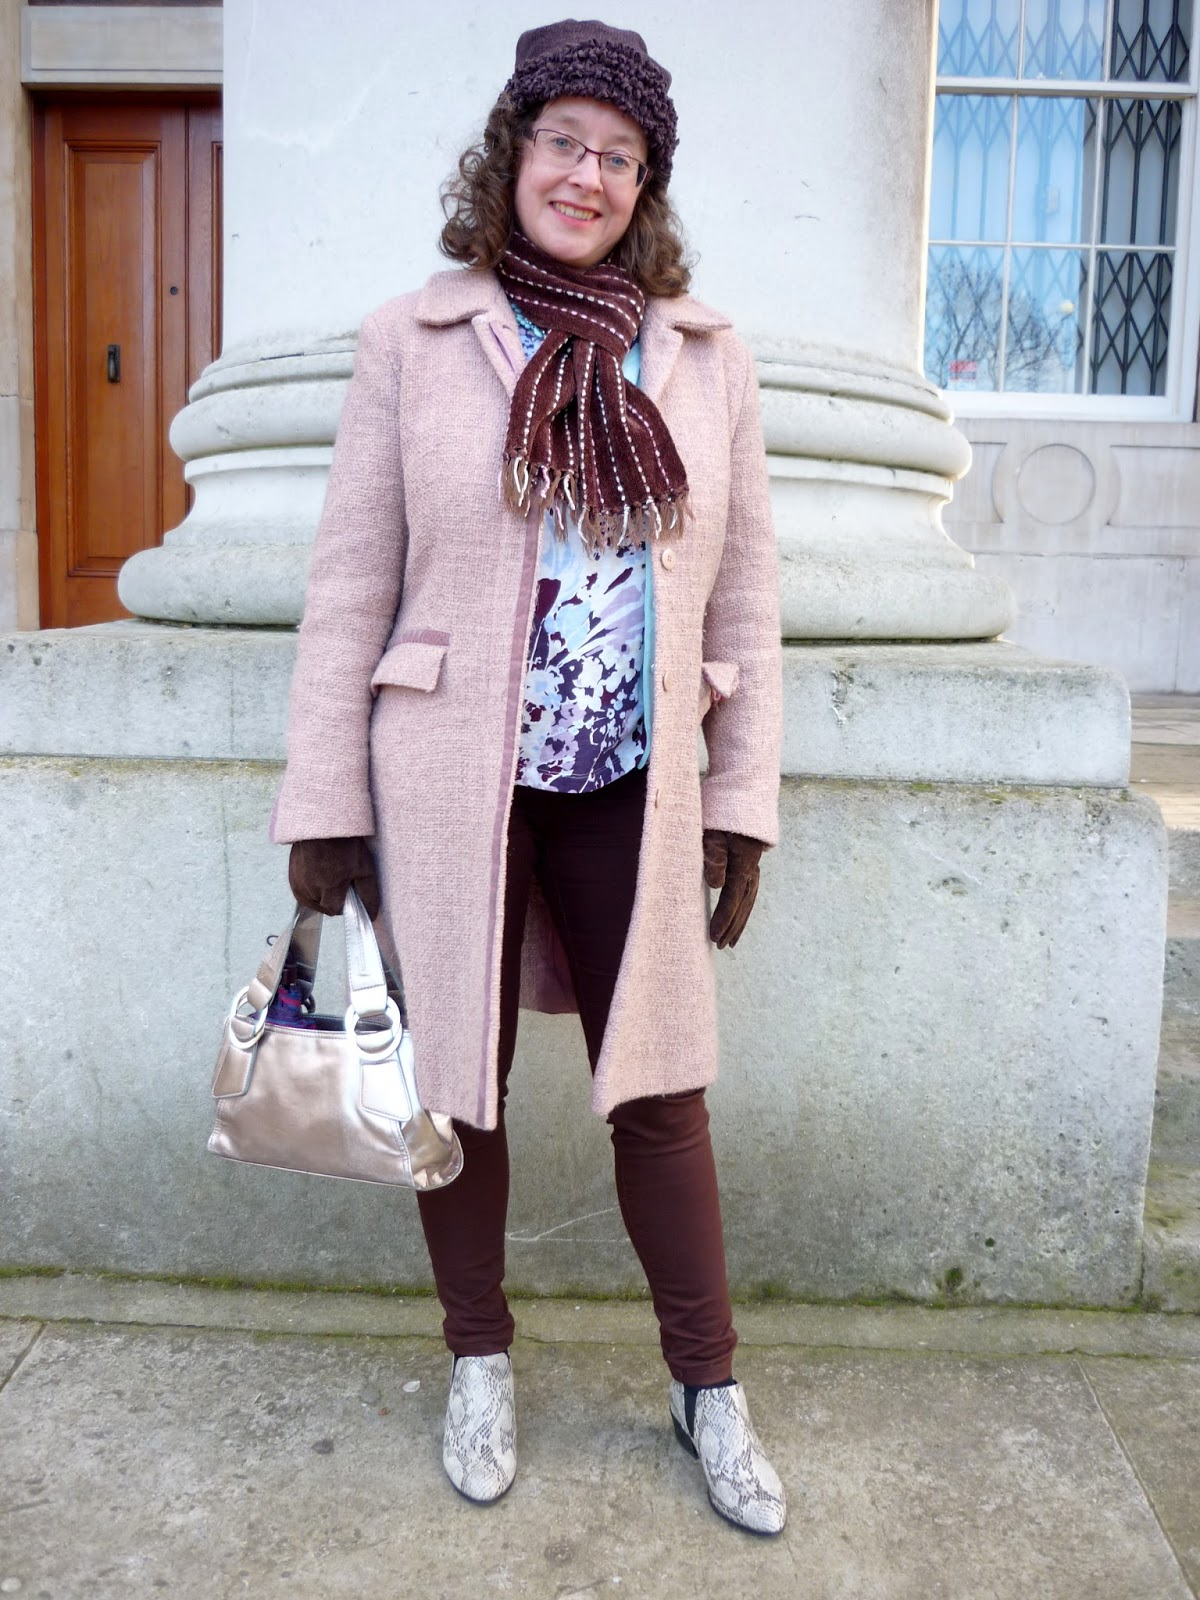 Transitioning to Spring: Pink Coat, Brown Jeans, Snakeskin Boots, Metallic Bag | Petite Silver Vixen, over 40 style